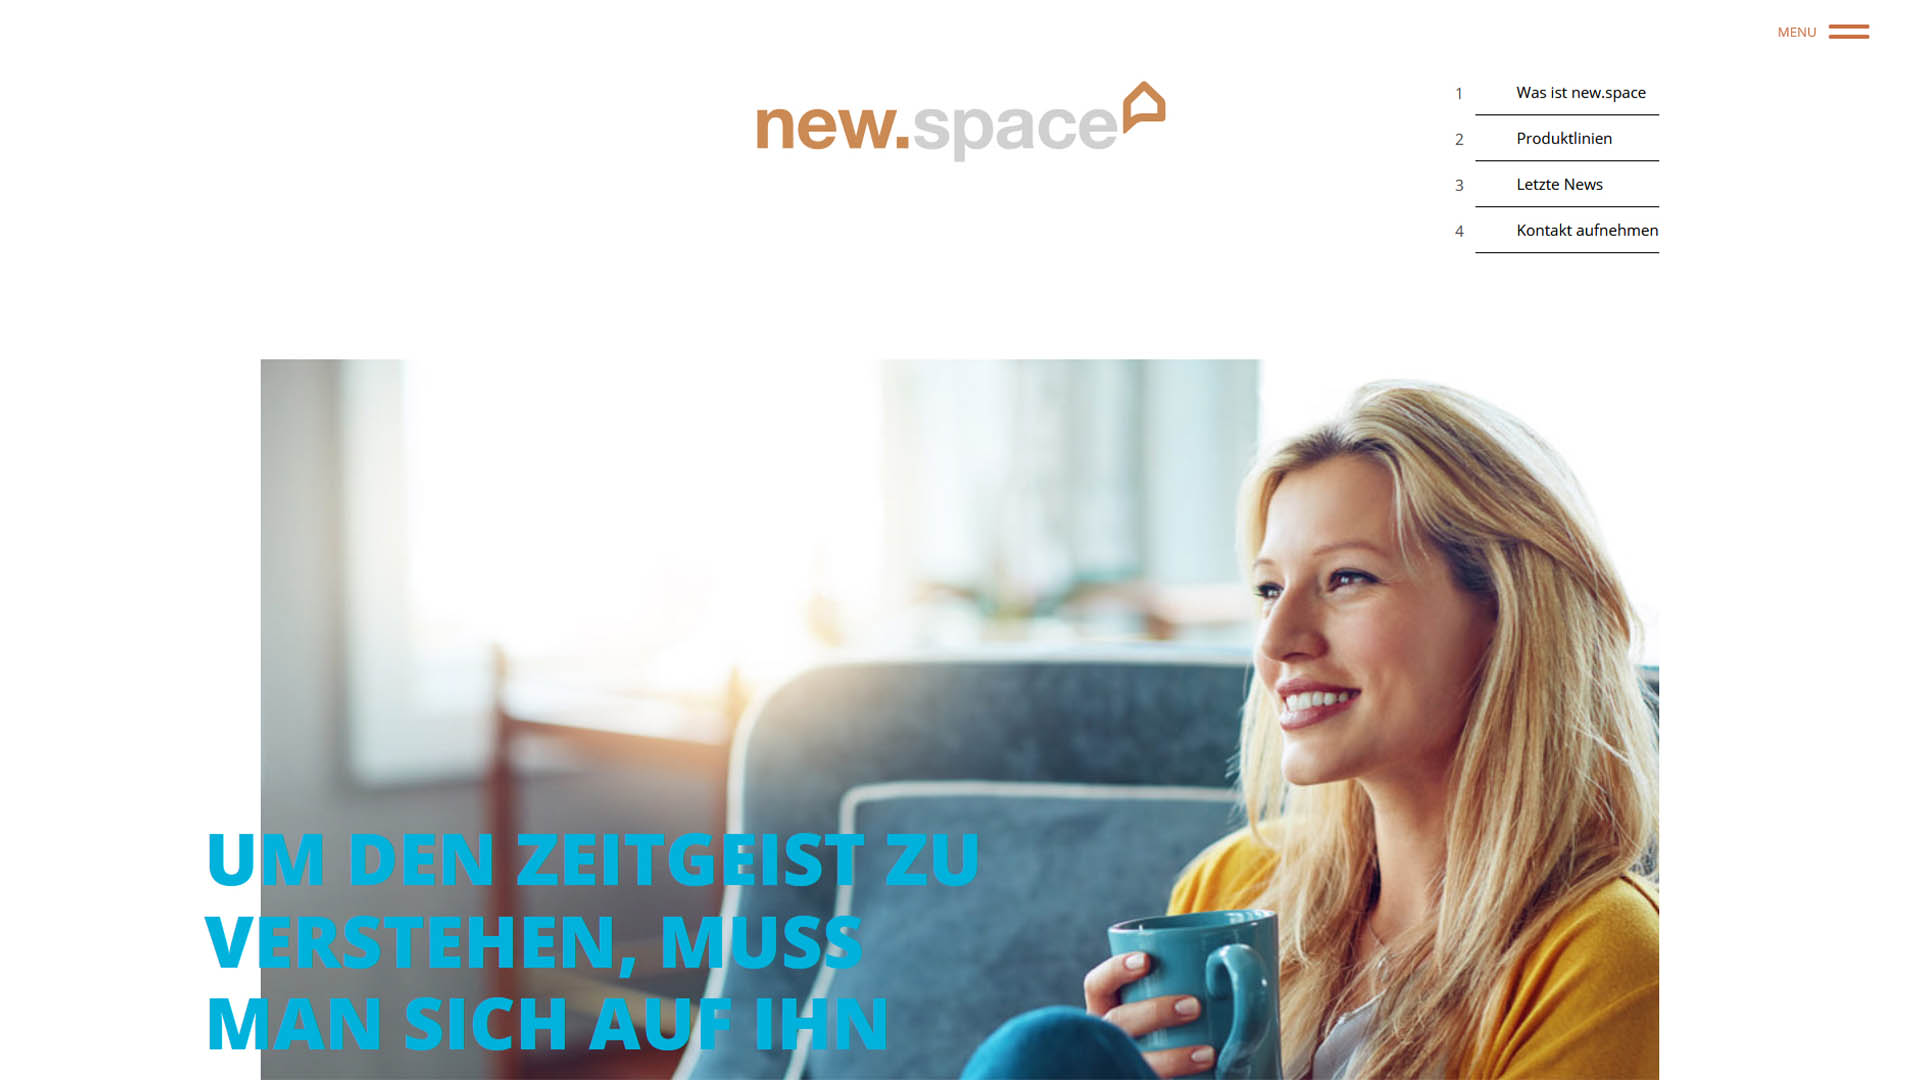 Raum_Visionen_Immobilienmarketing_Webseite_new.space01